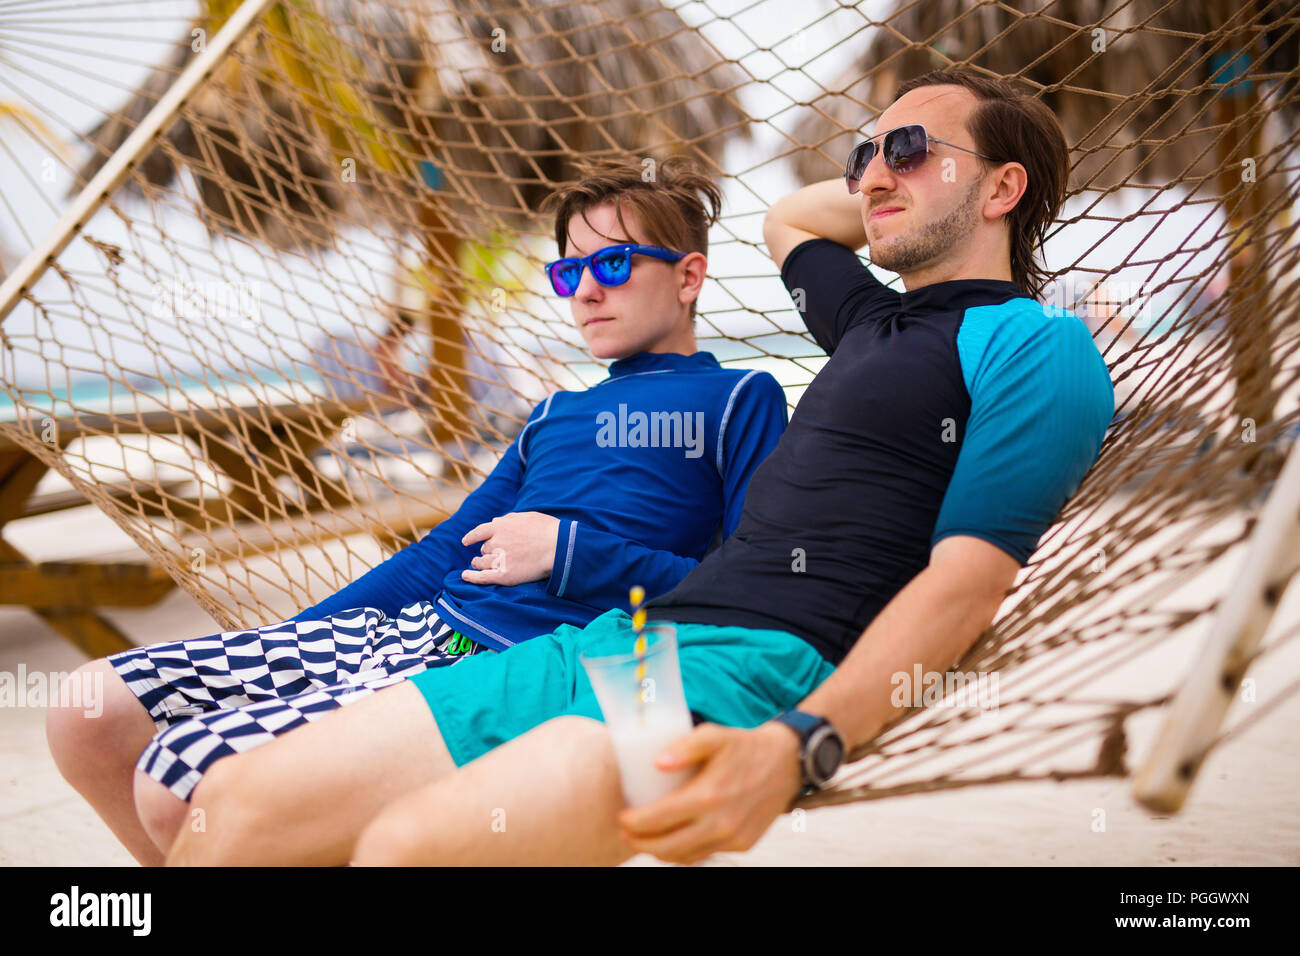 Father and his teenage son relaxing in hammock - Stock Image